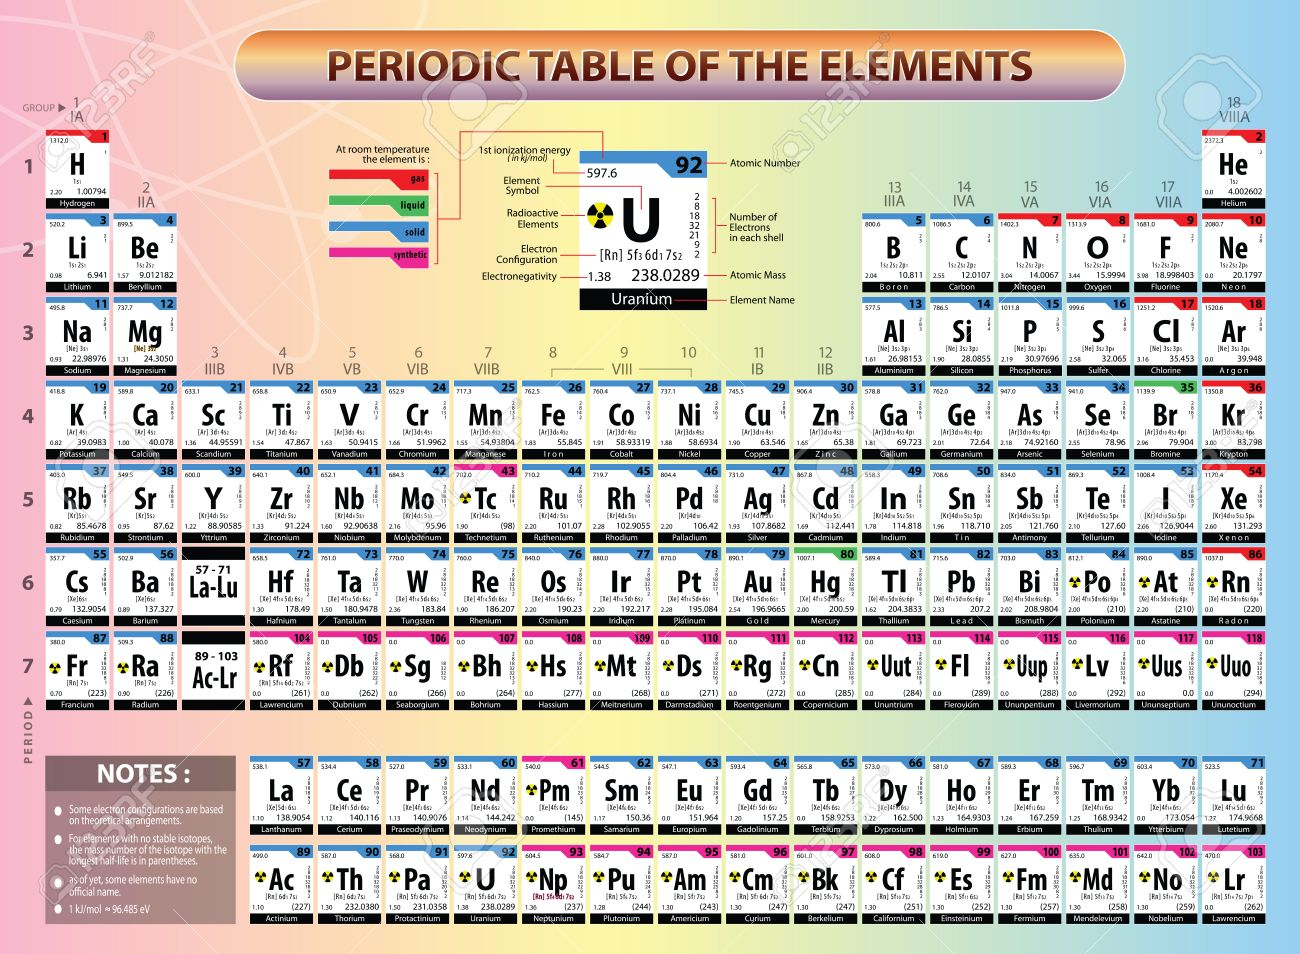 Periodic table uuu images periodic table images cyanide periodic table image collections periodic table images periodic table uuu images periodic table images periodic gamestrikefo Choice Image